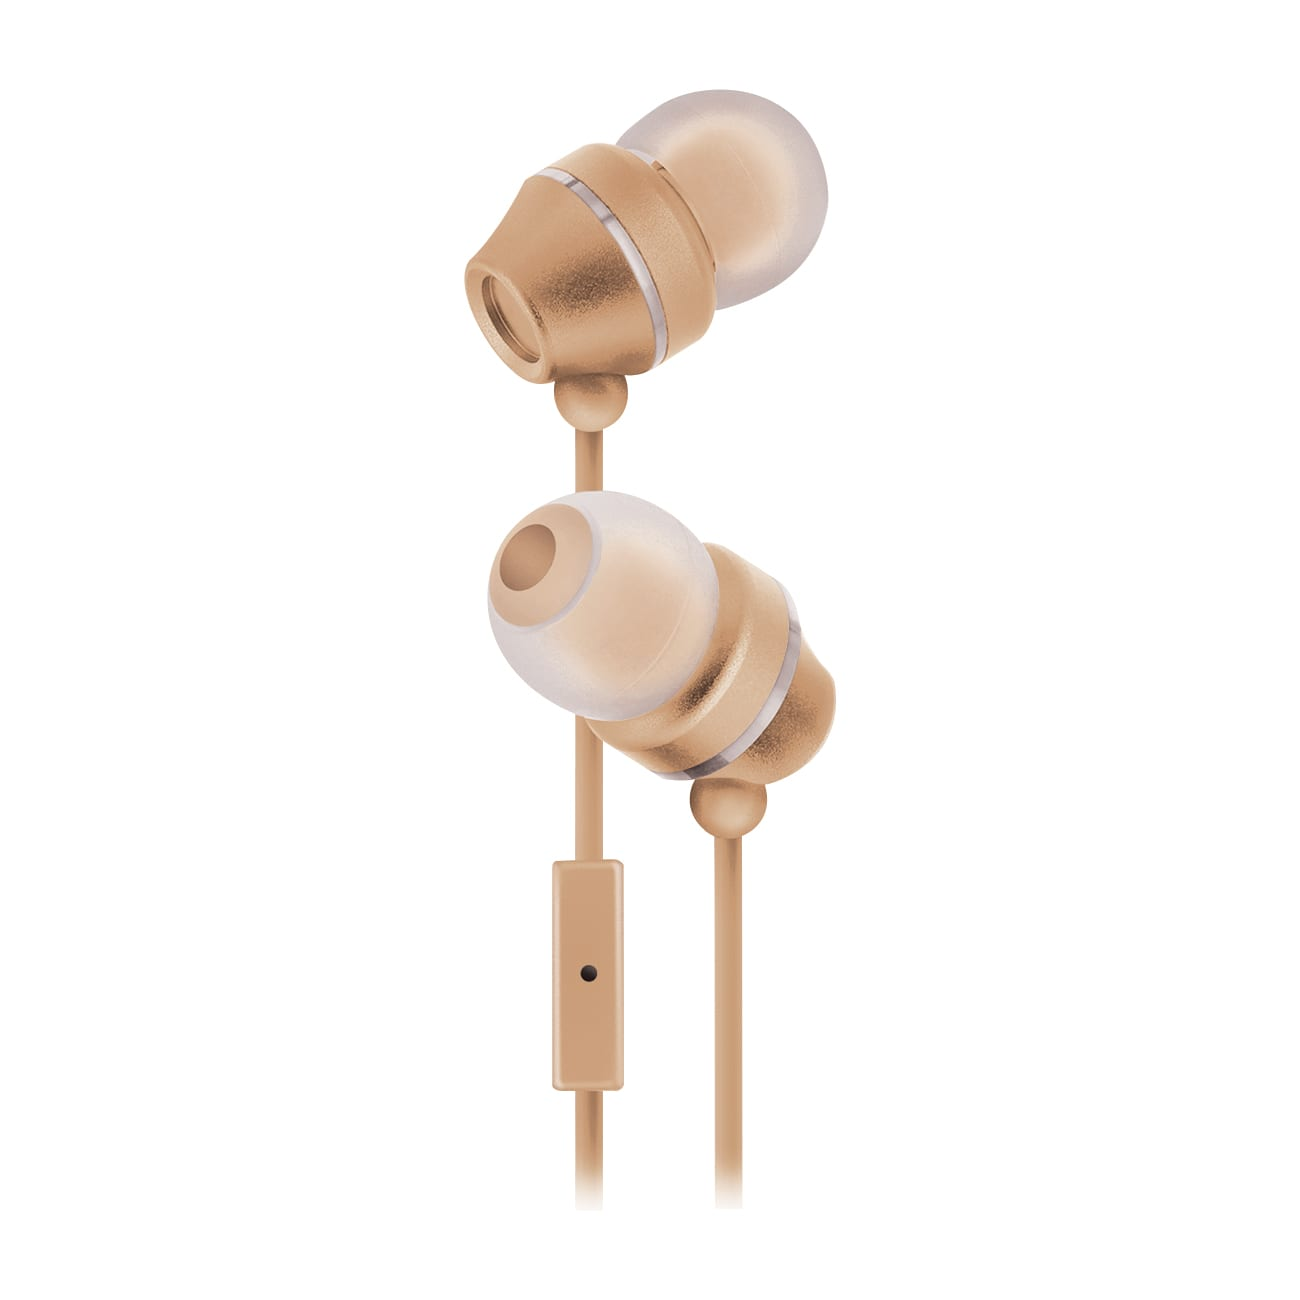 Sentry Industries HM165: Stereo Earbuds with in-line Mic in white package In Gold